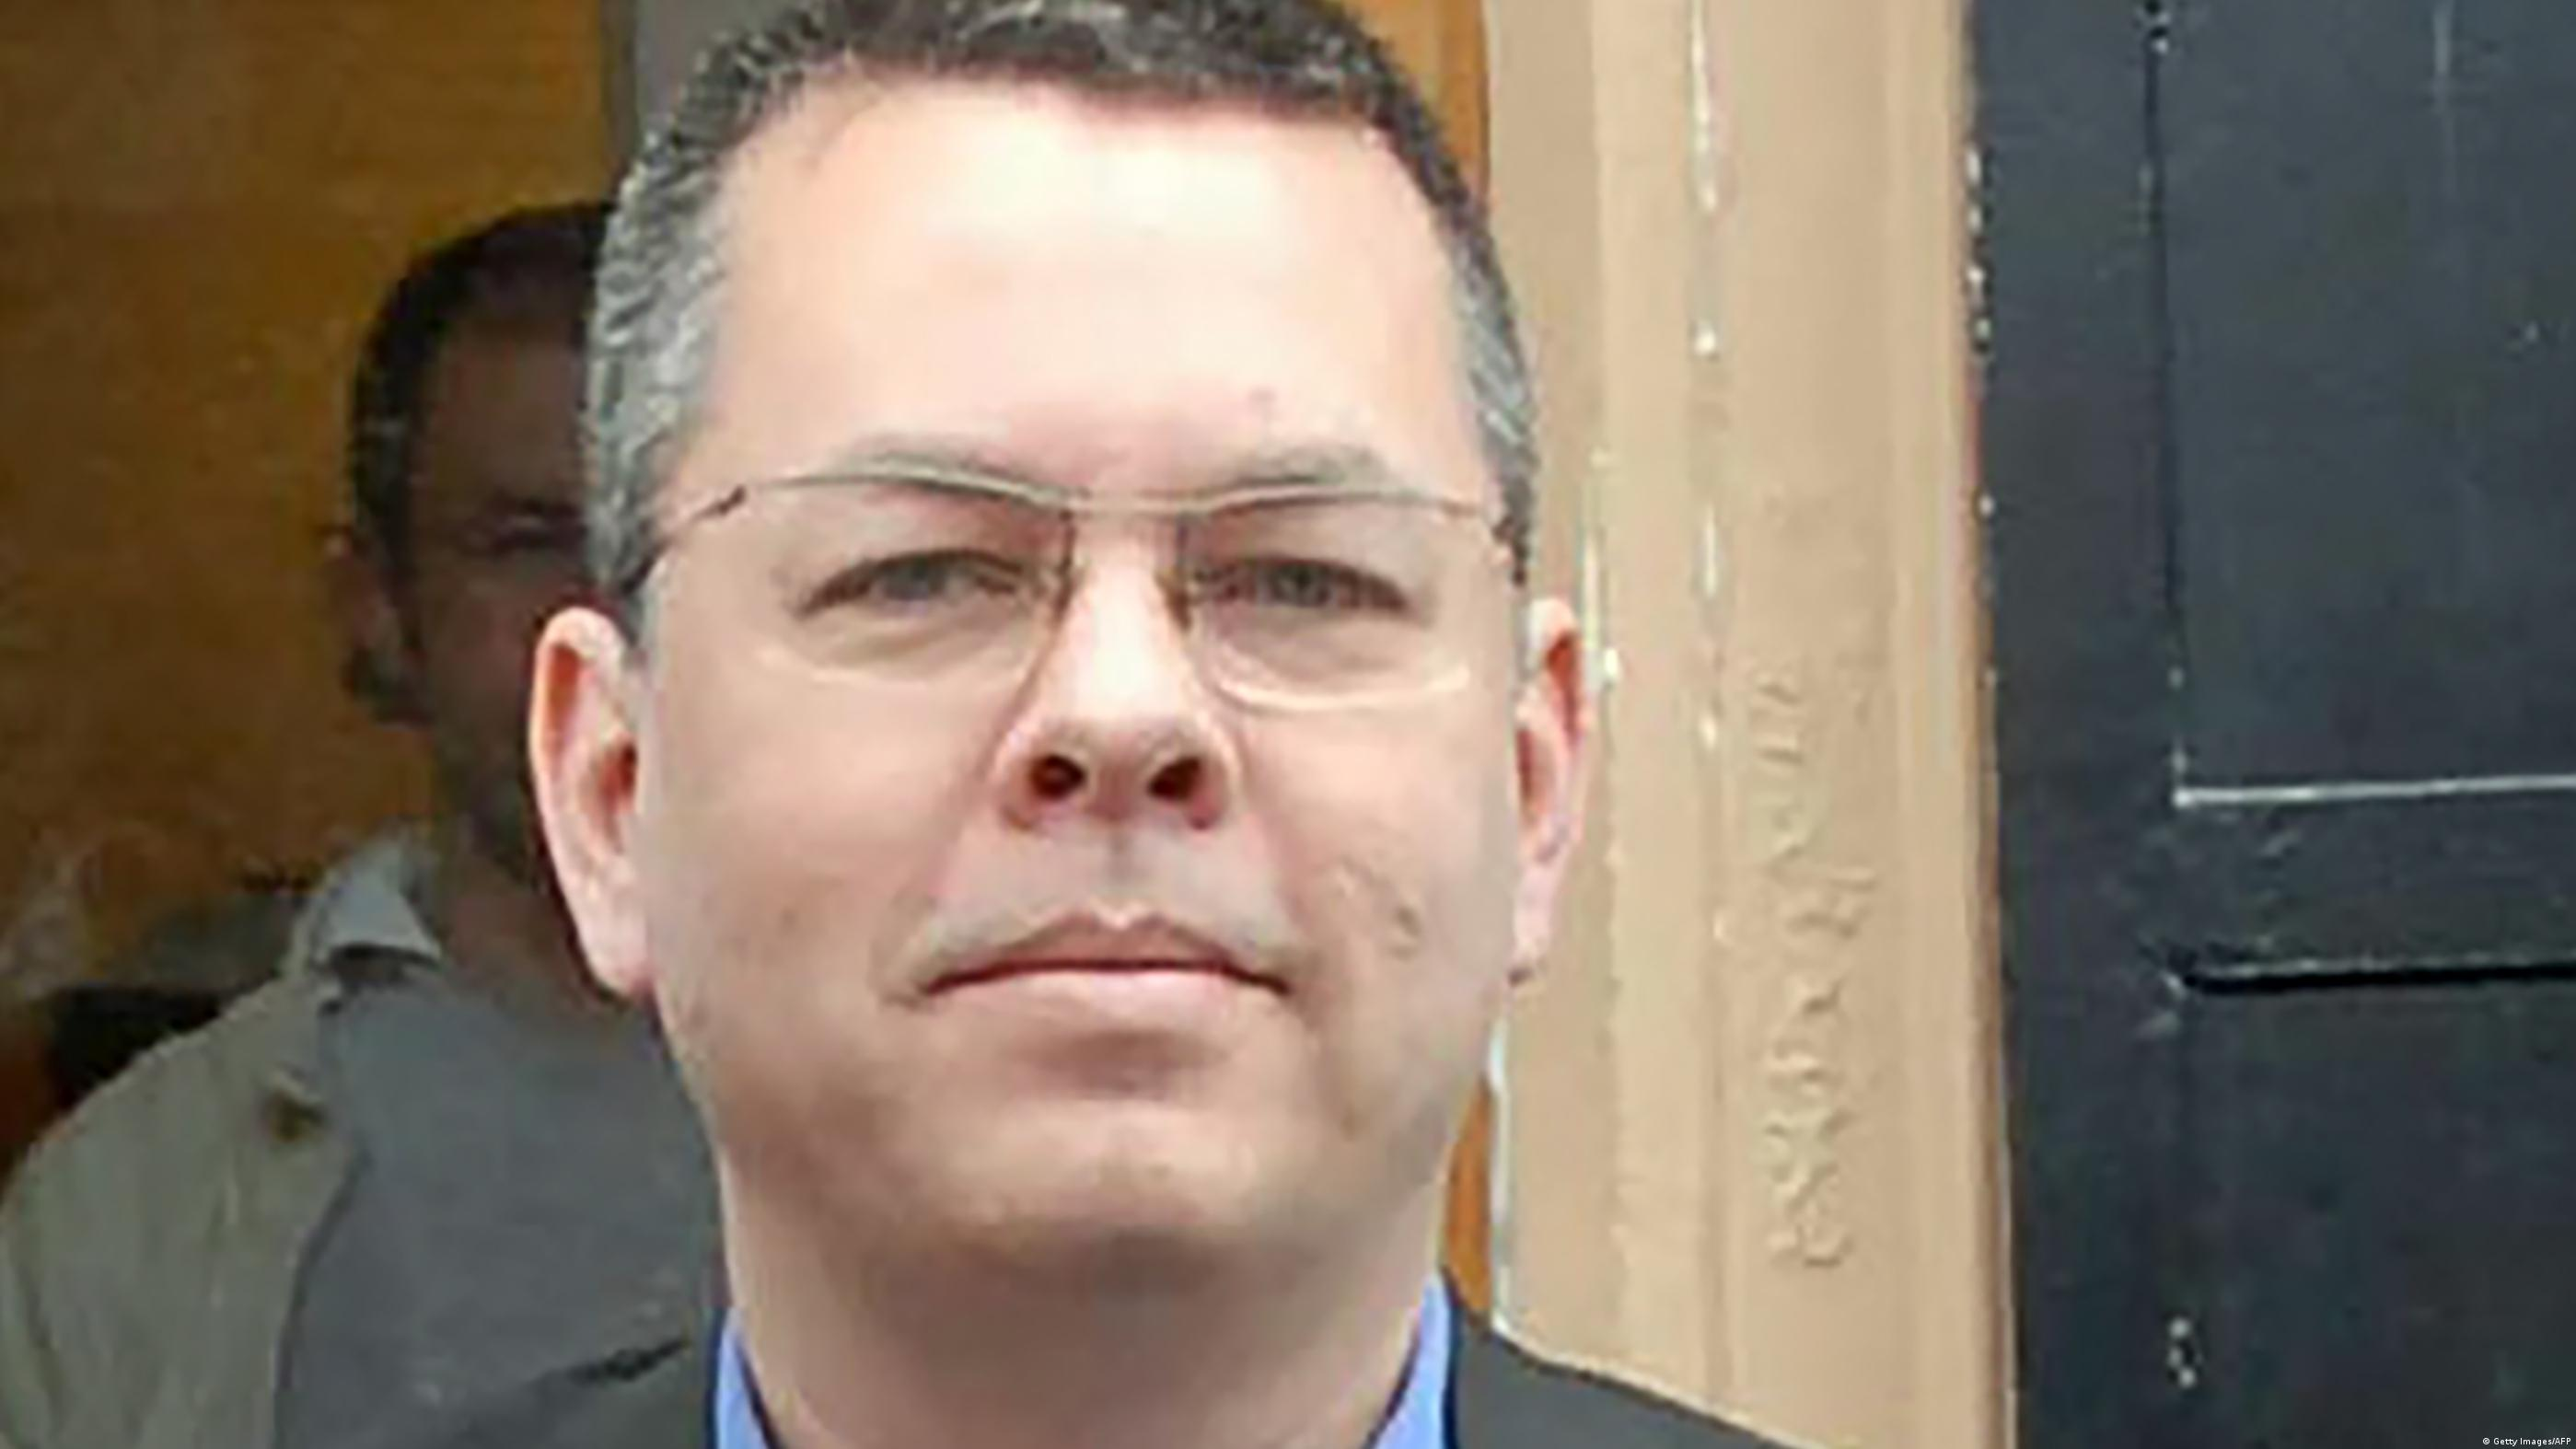 American Pastor Andrew Brunson has been unjustly locked away in a Turkish prison for over a year and a half His only crime is living out his